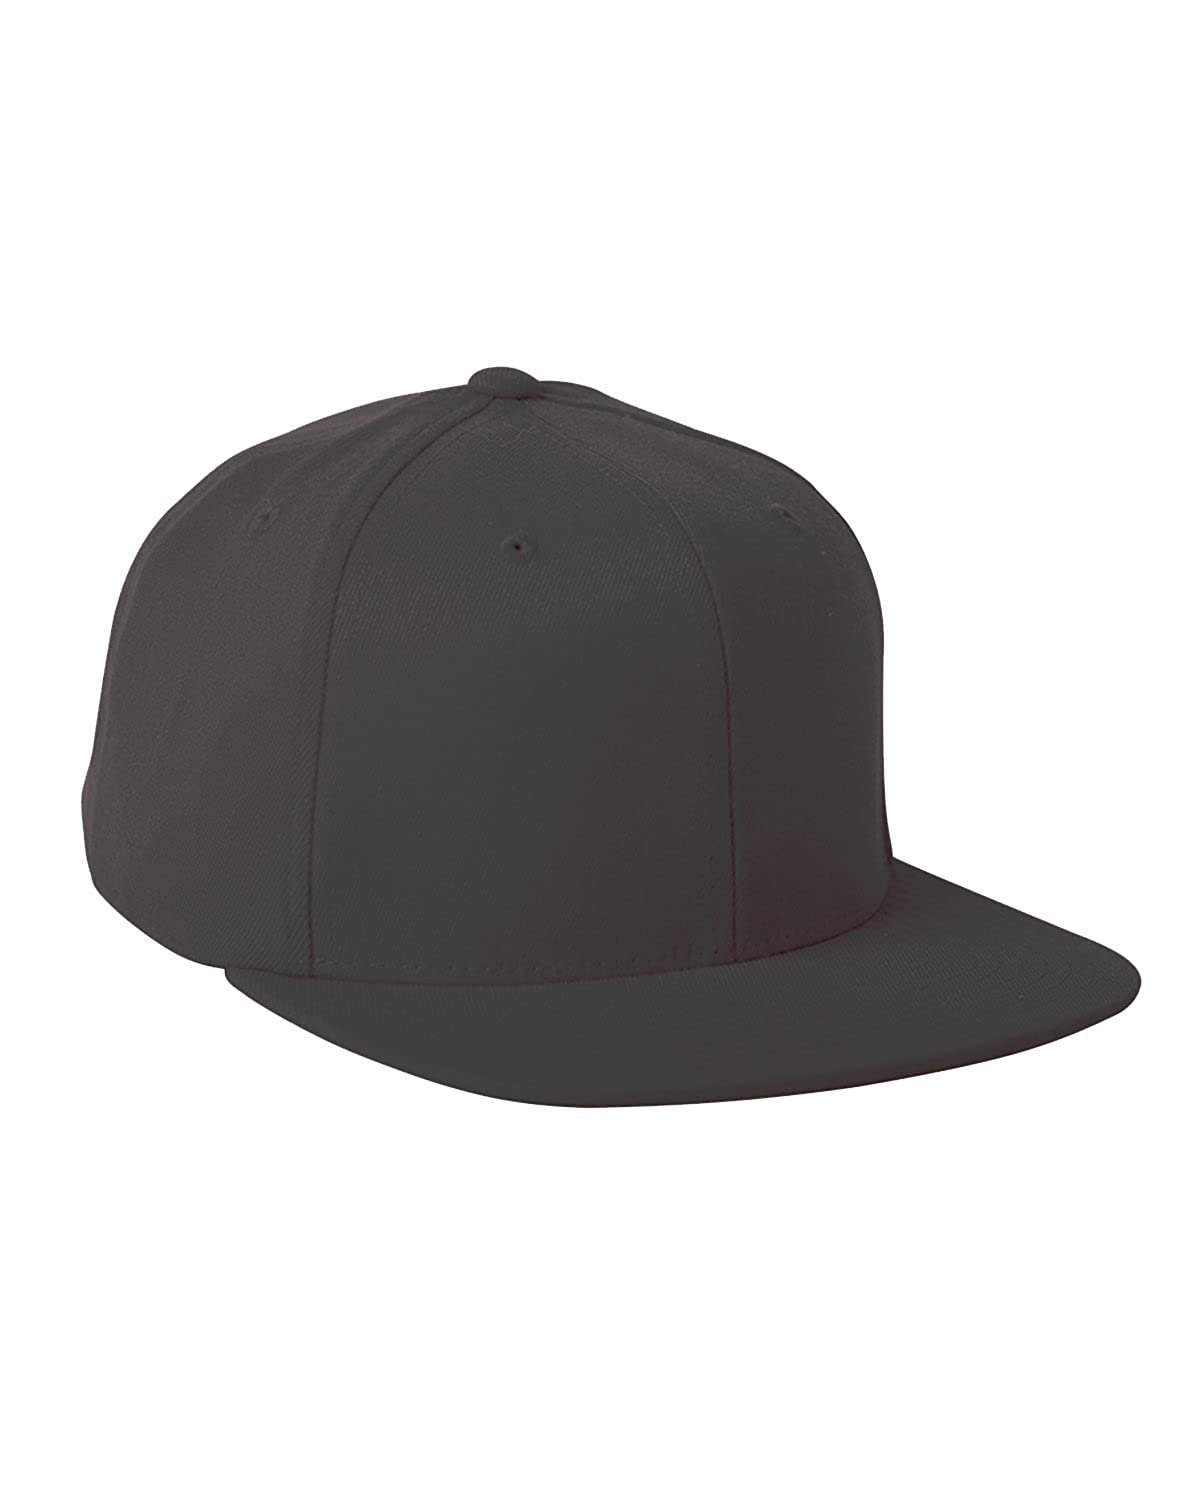 Flexfit 110F One Ten Snapback Hat Black at Amazon Men s Clothing store   Baseball Caps 377175889b86